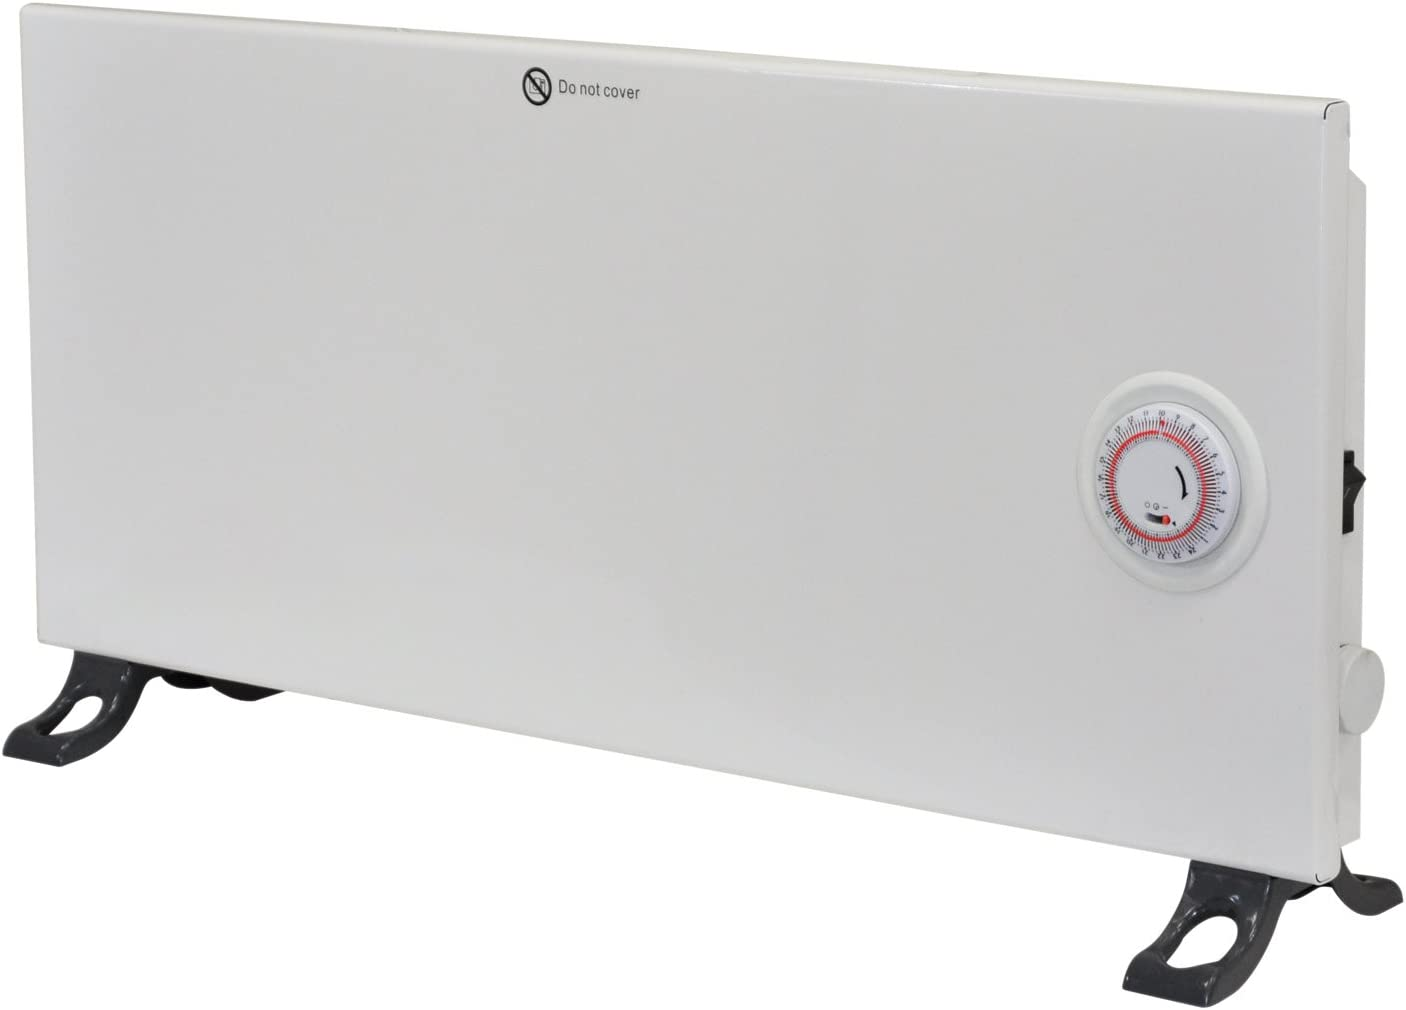 Motionperformance Essentials 800 Watts Ultra Slim Panel Convector Panel Heater 24Hr Timer Adjustable Thermostat (Free Standing Or Wall Mounted)